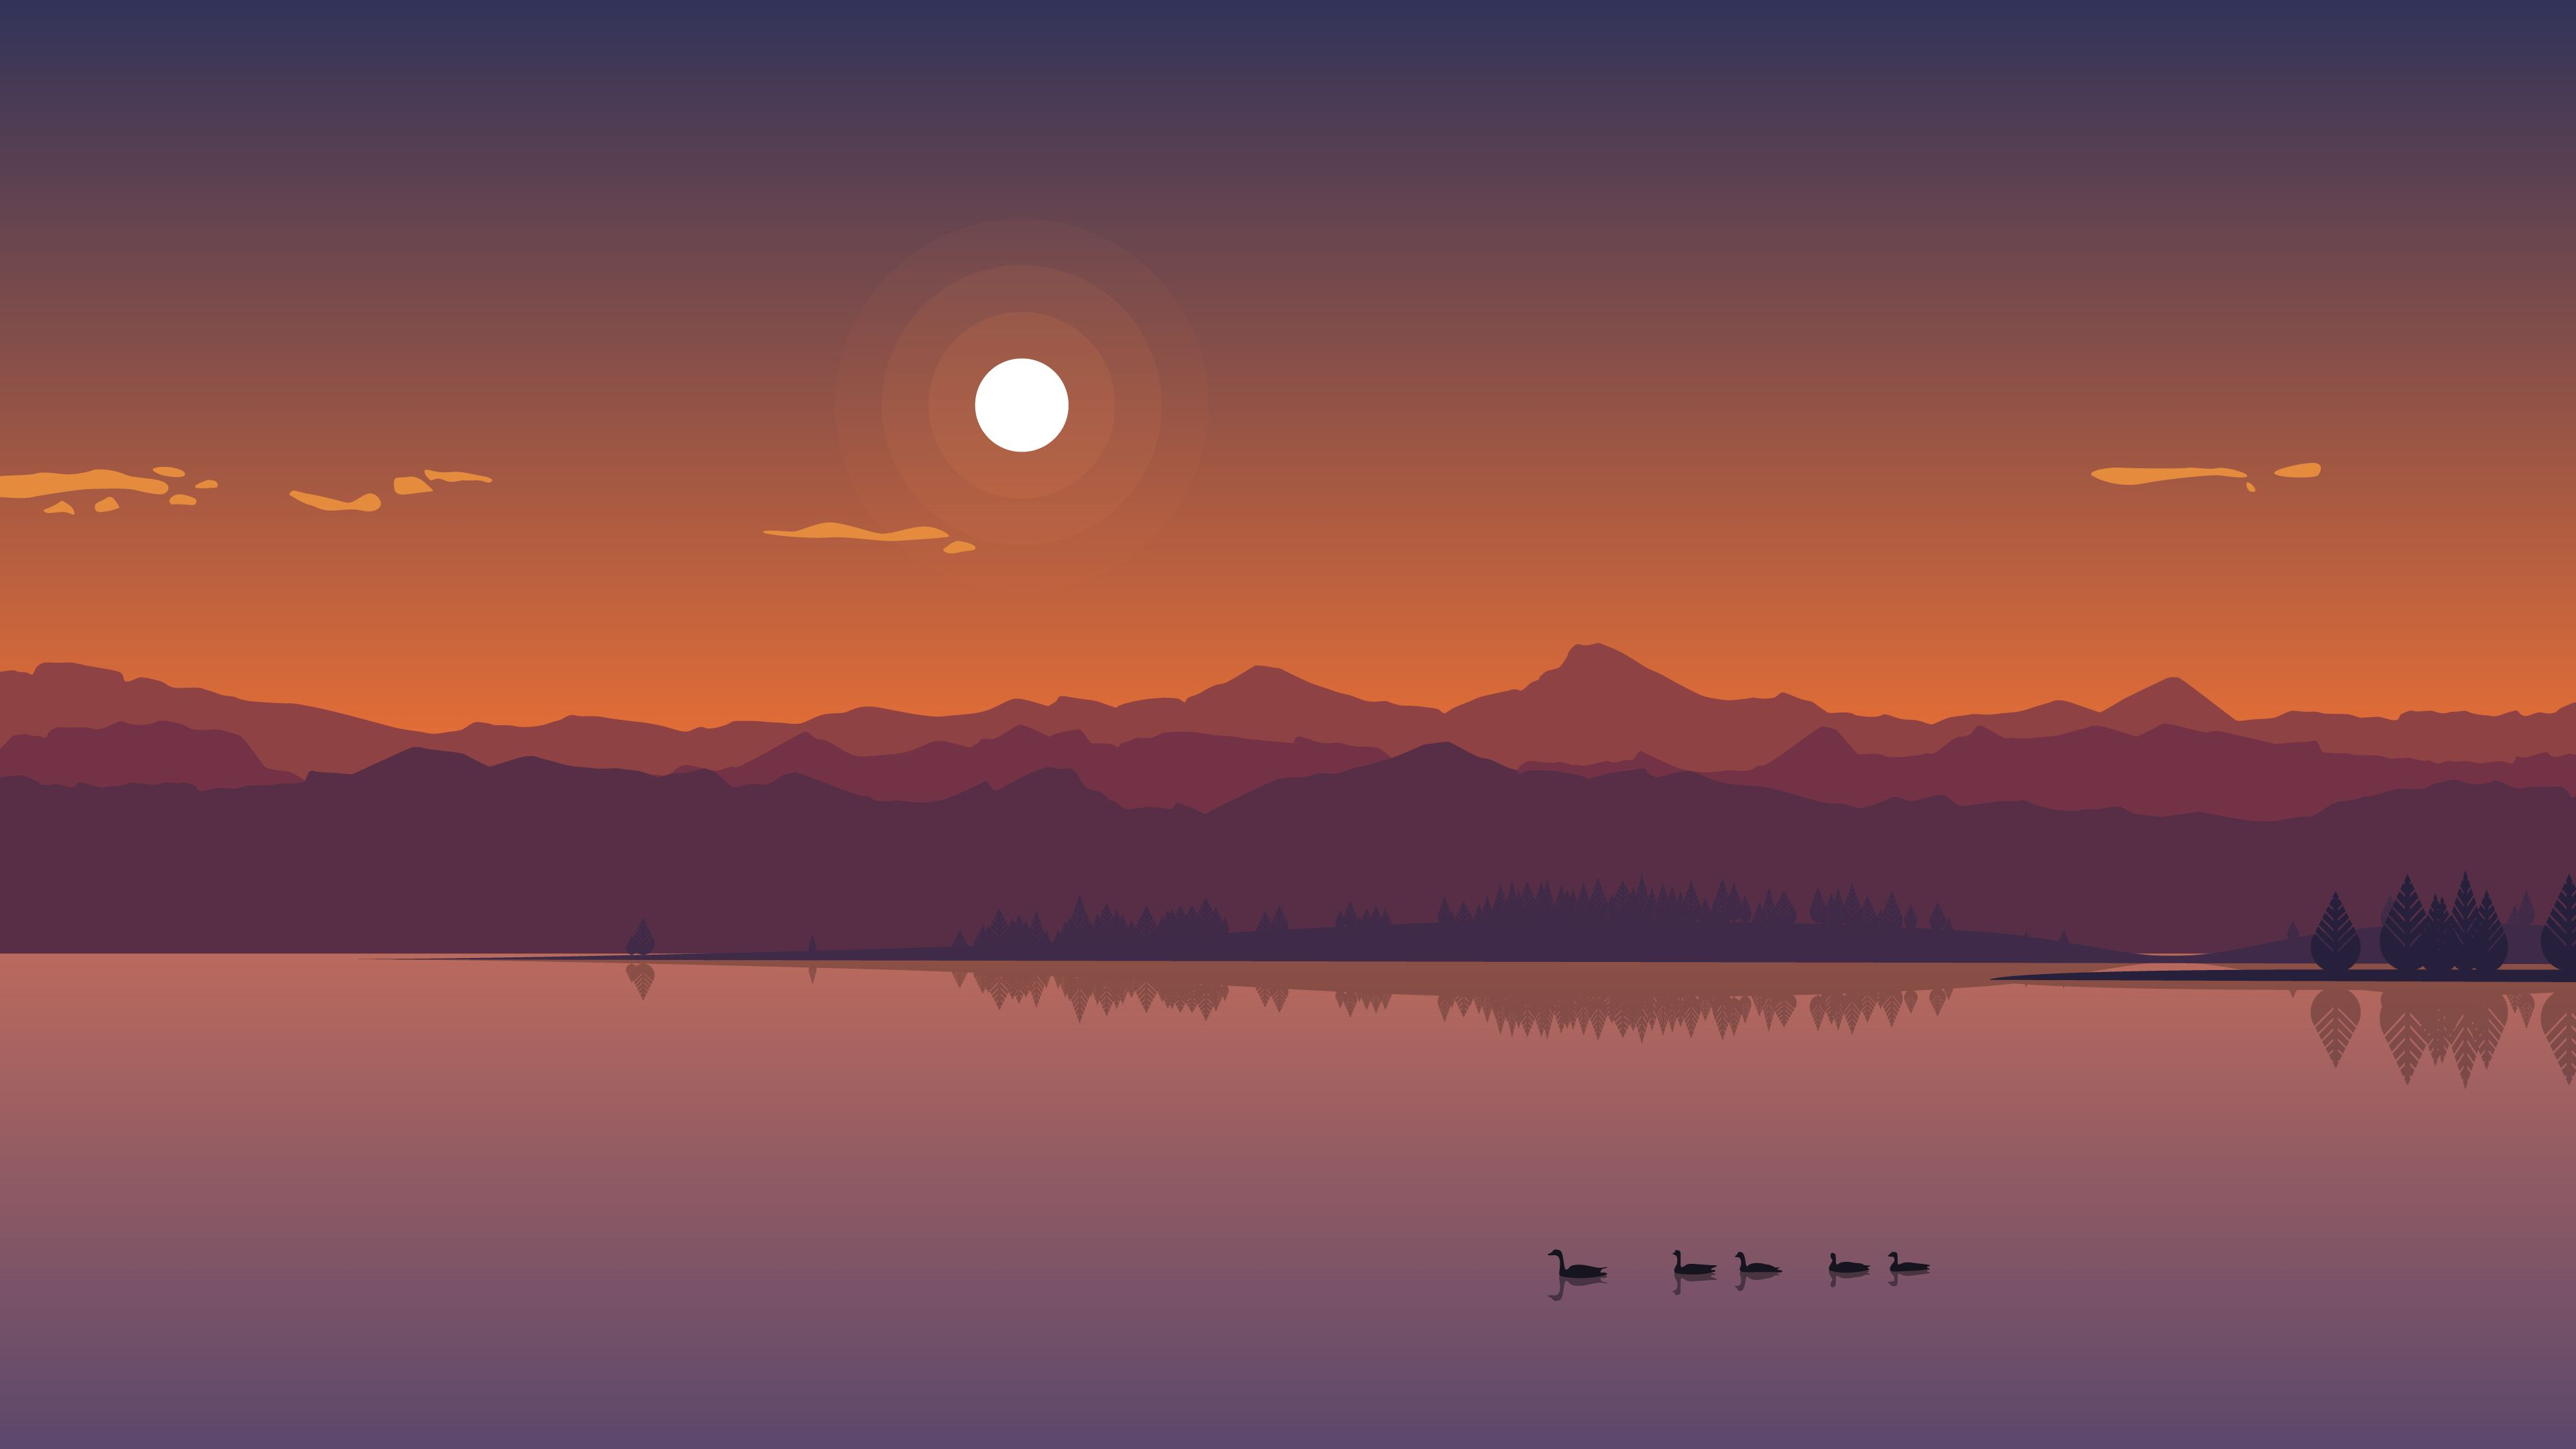 Minimal Lakeside Sunset [3840 x 2160] Minimal wallpaper